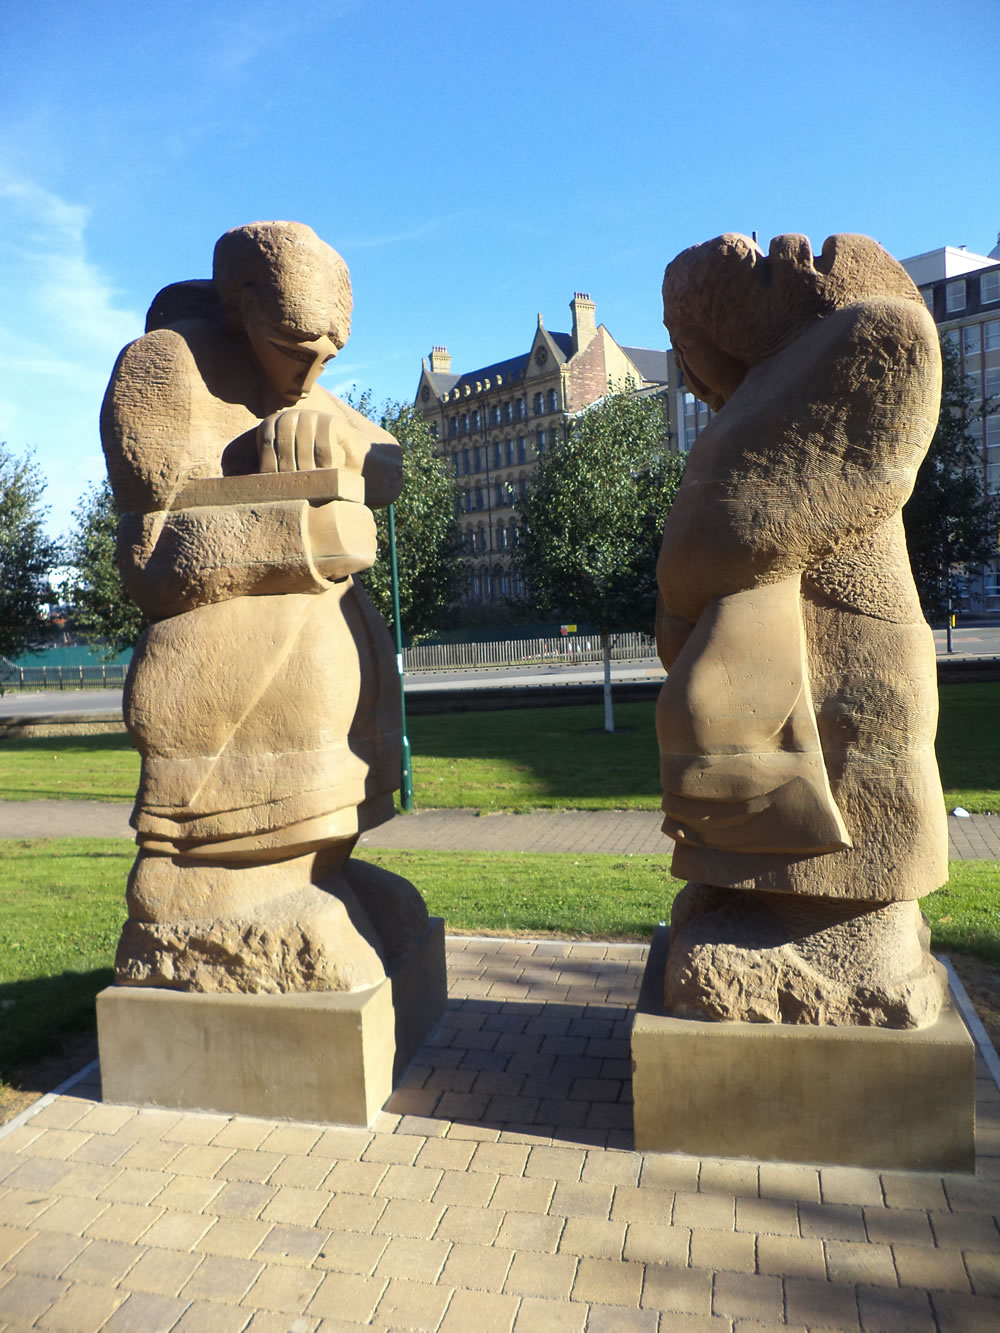 Two modern Statues in Bradford city centre